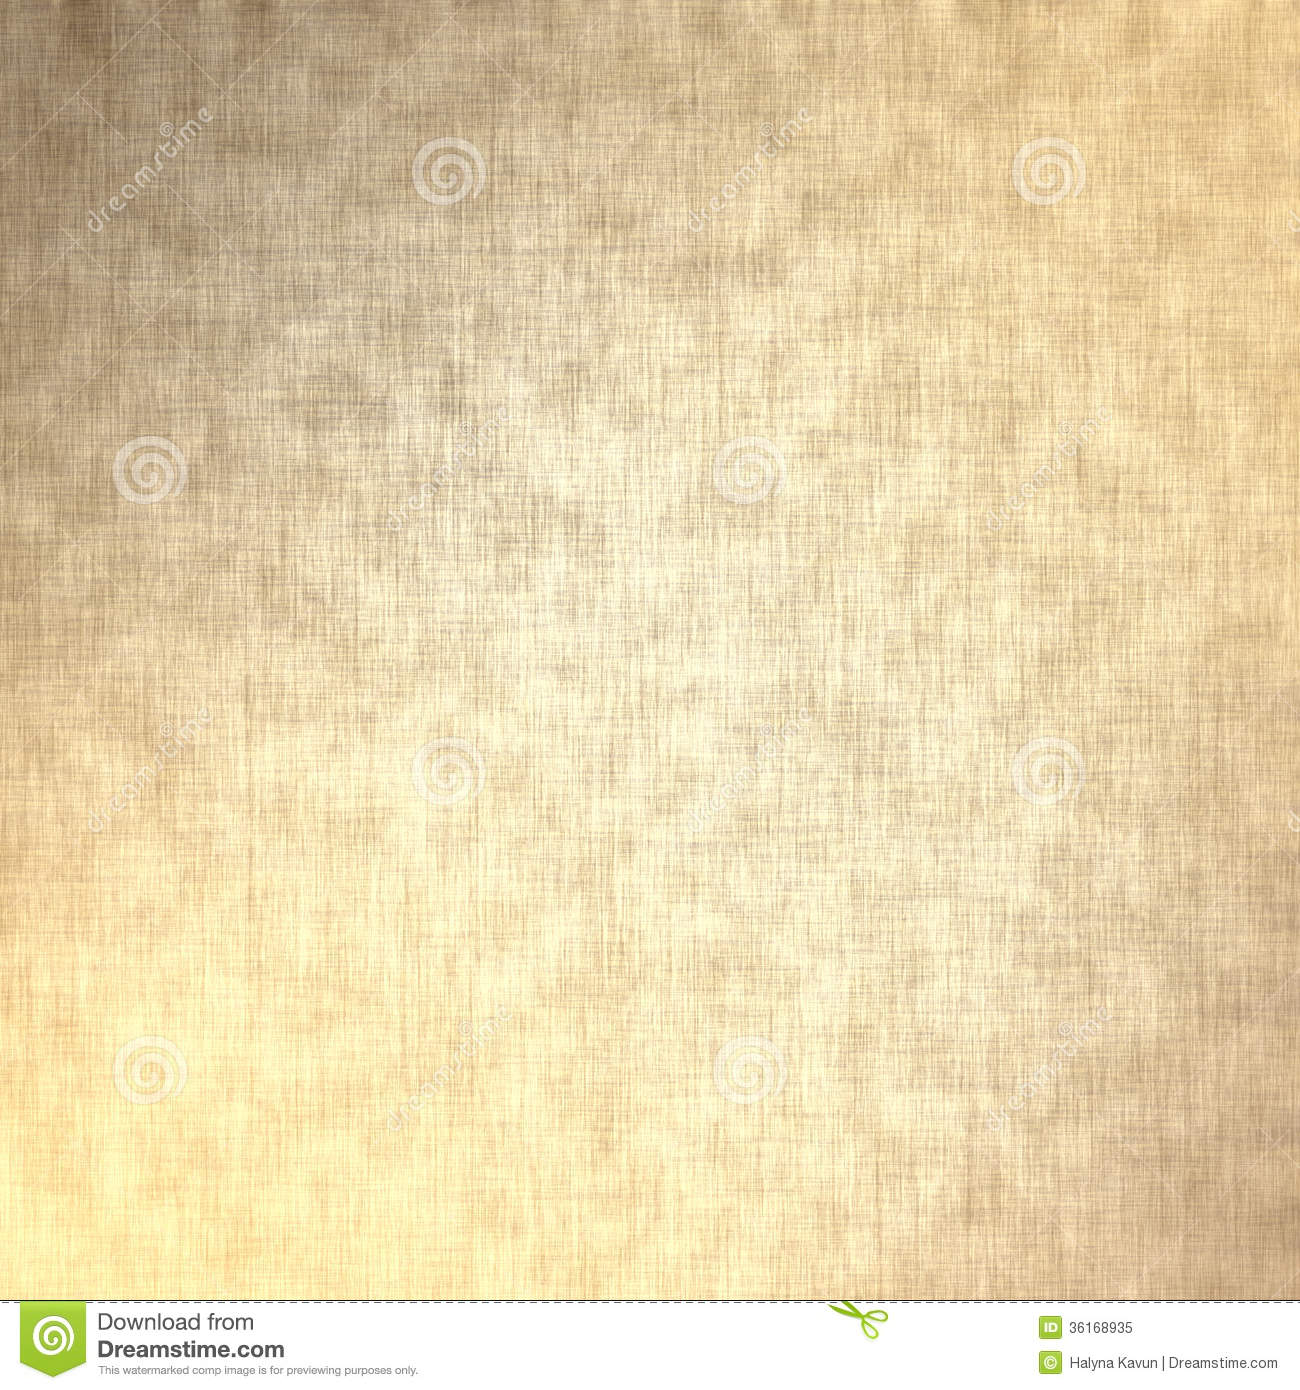 Golden background linen texture royalty free stock photo image